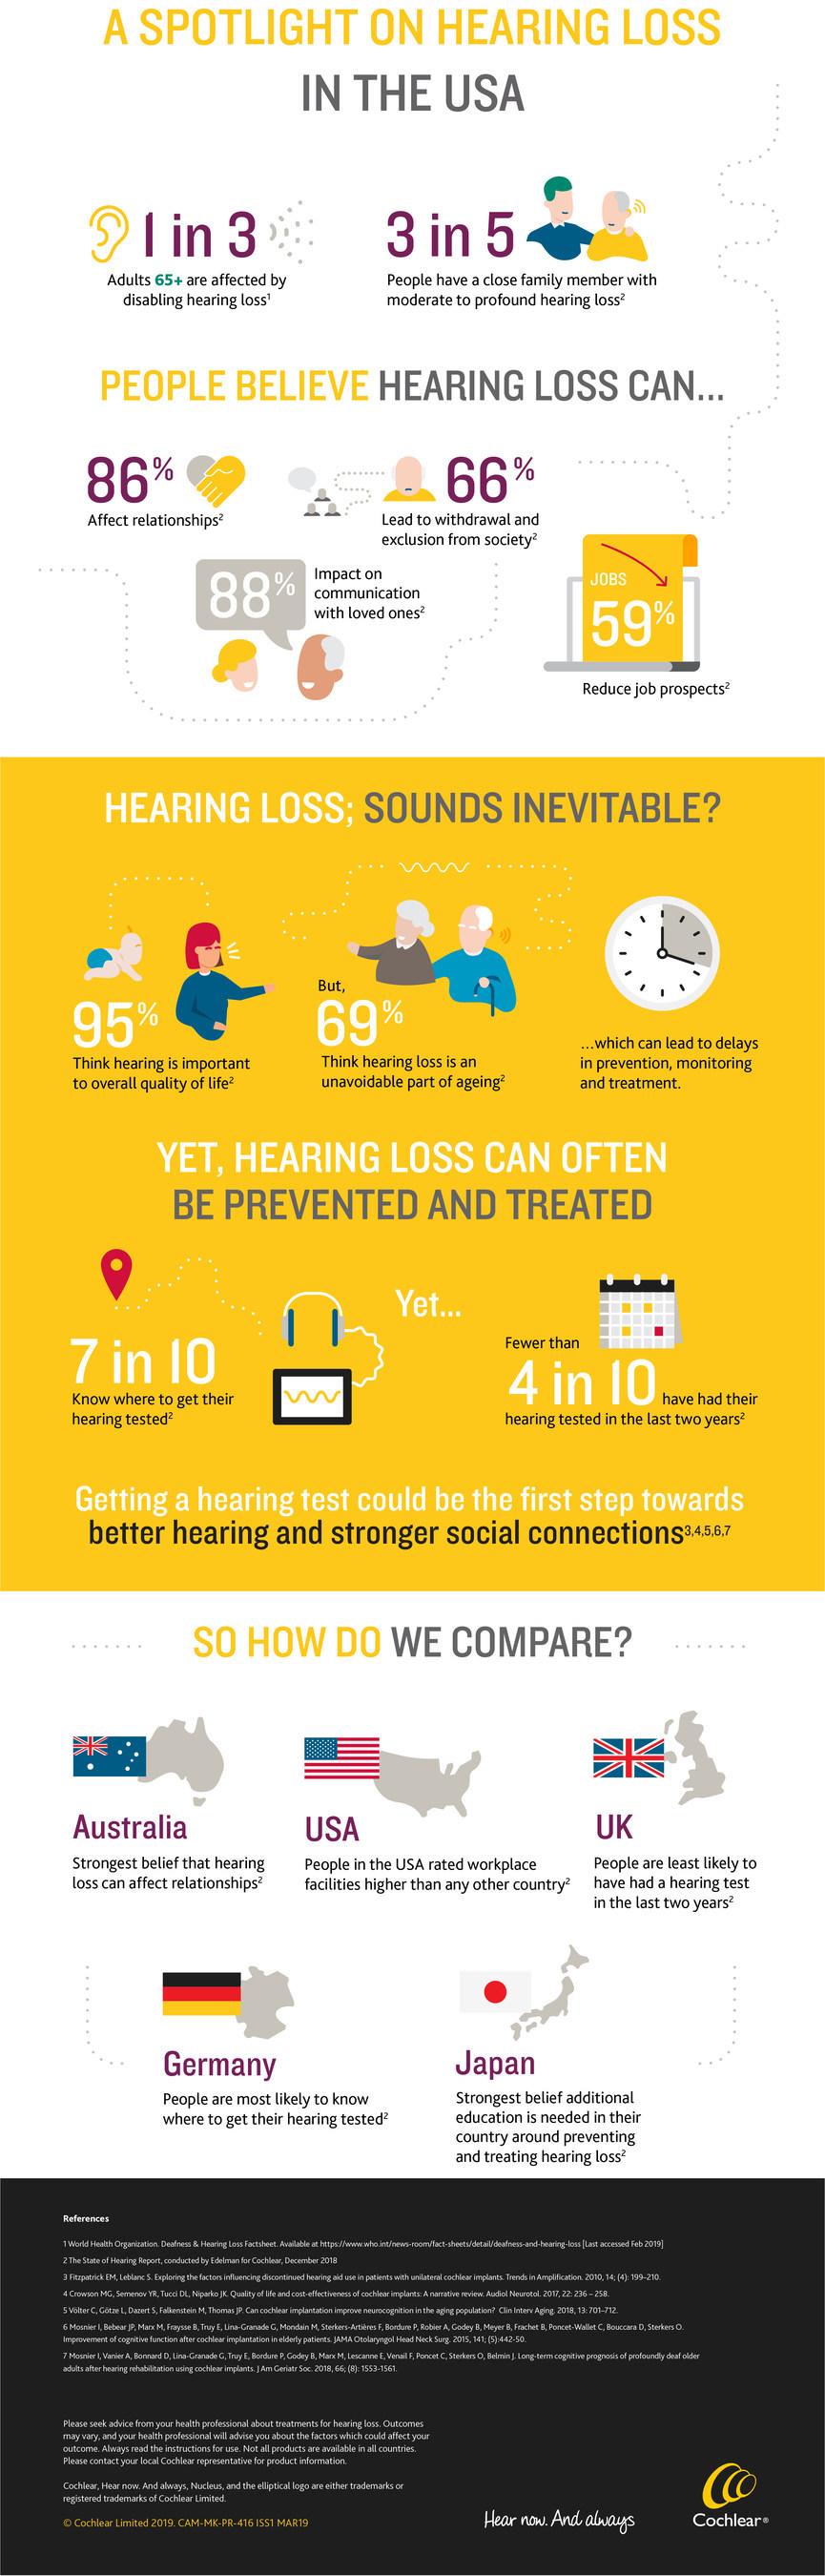 The State of Hearing Report, sponsored by Cochlear, evaluates the challenges faced by people with hearing loss. Notably, nearly 60 percent of people in the U.S. report having a close family member who has moderate to profound hearing loss, with more than one in three of those respondents stating that the hearing loss has had some level of impact on their communication. Visit SoundsInevitable.com for the full report.